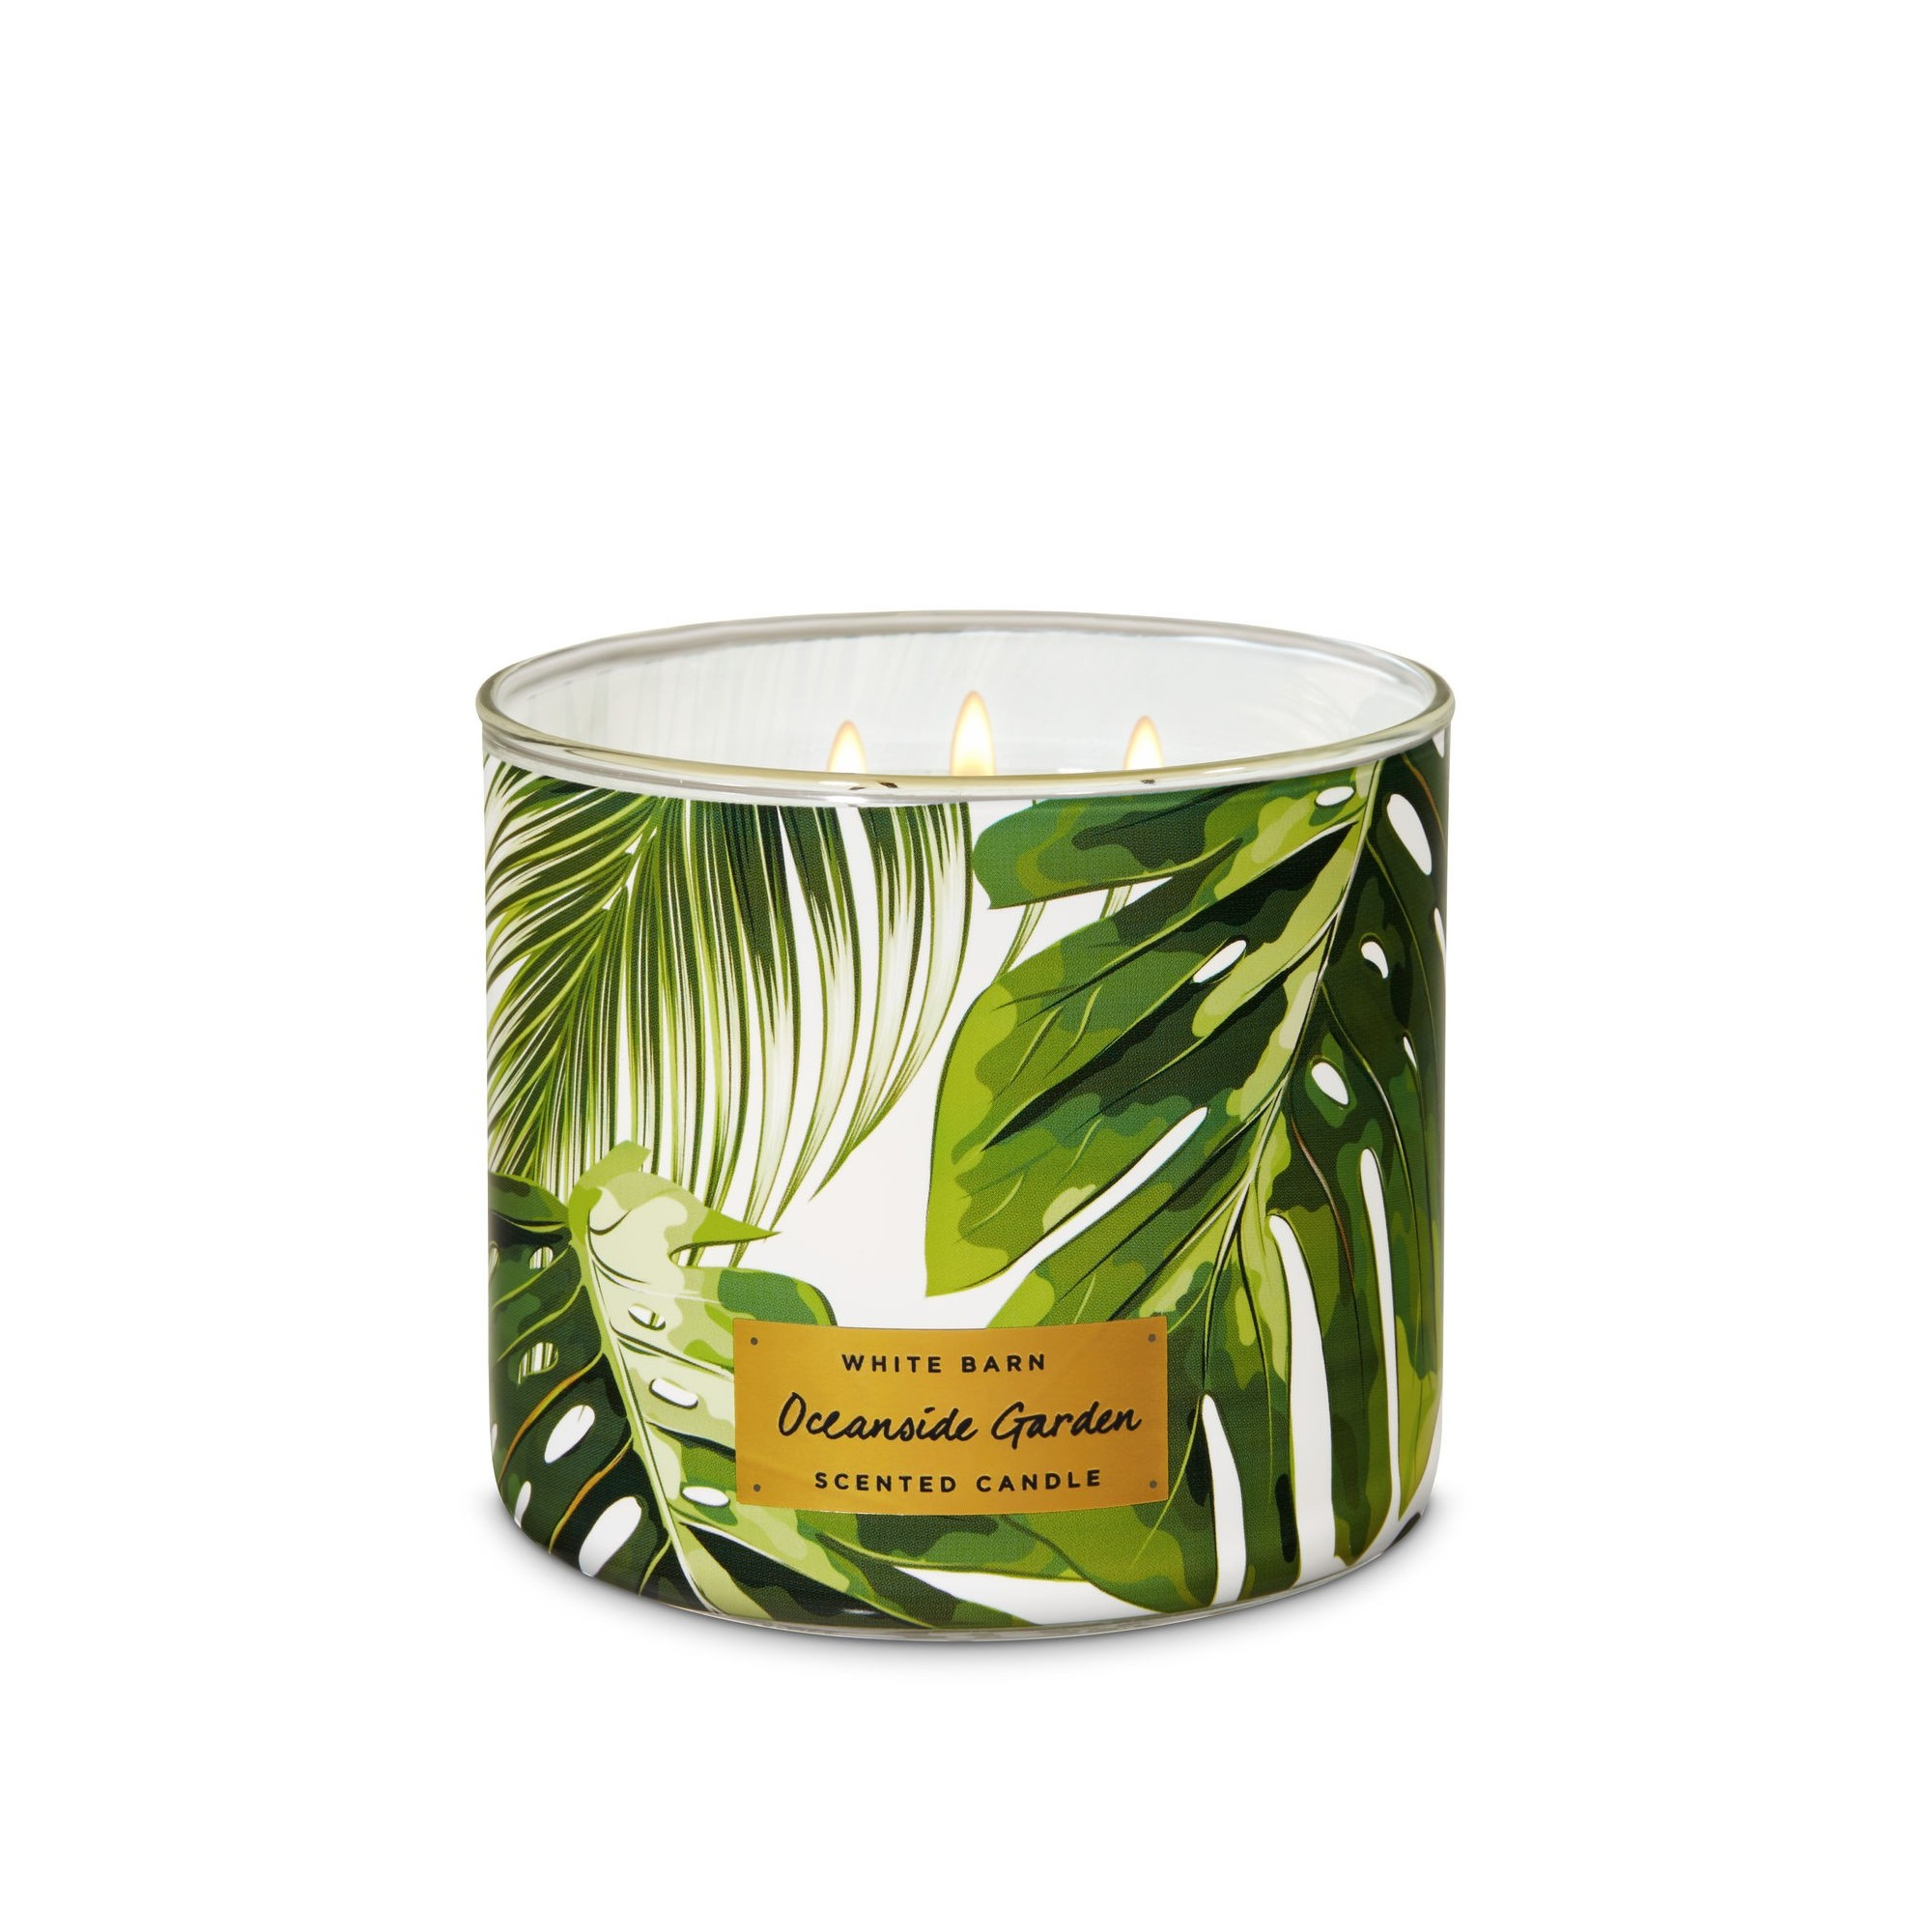 Bath & Body Works Oceanside Garden 3 Wick Scented Candle